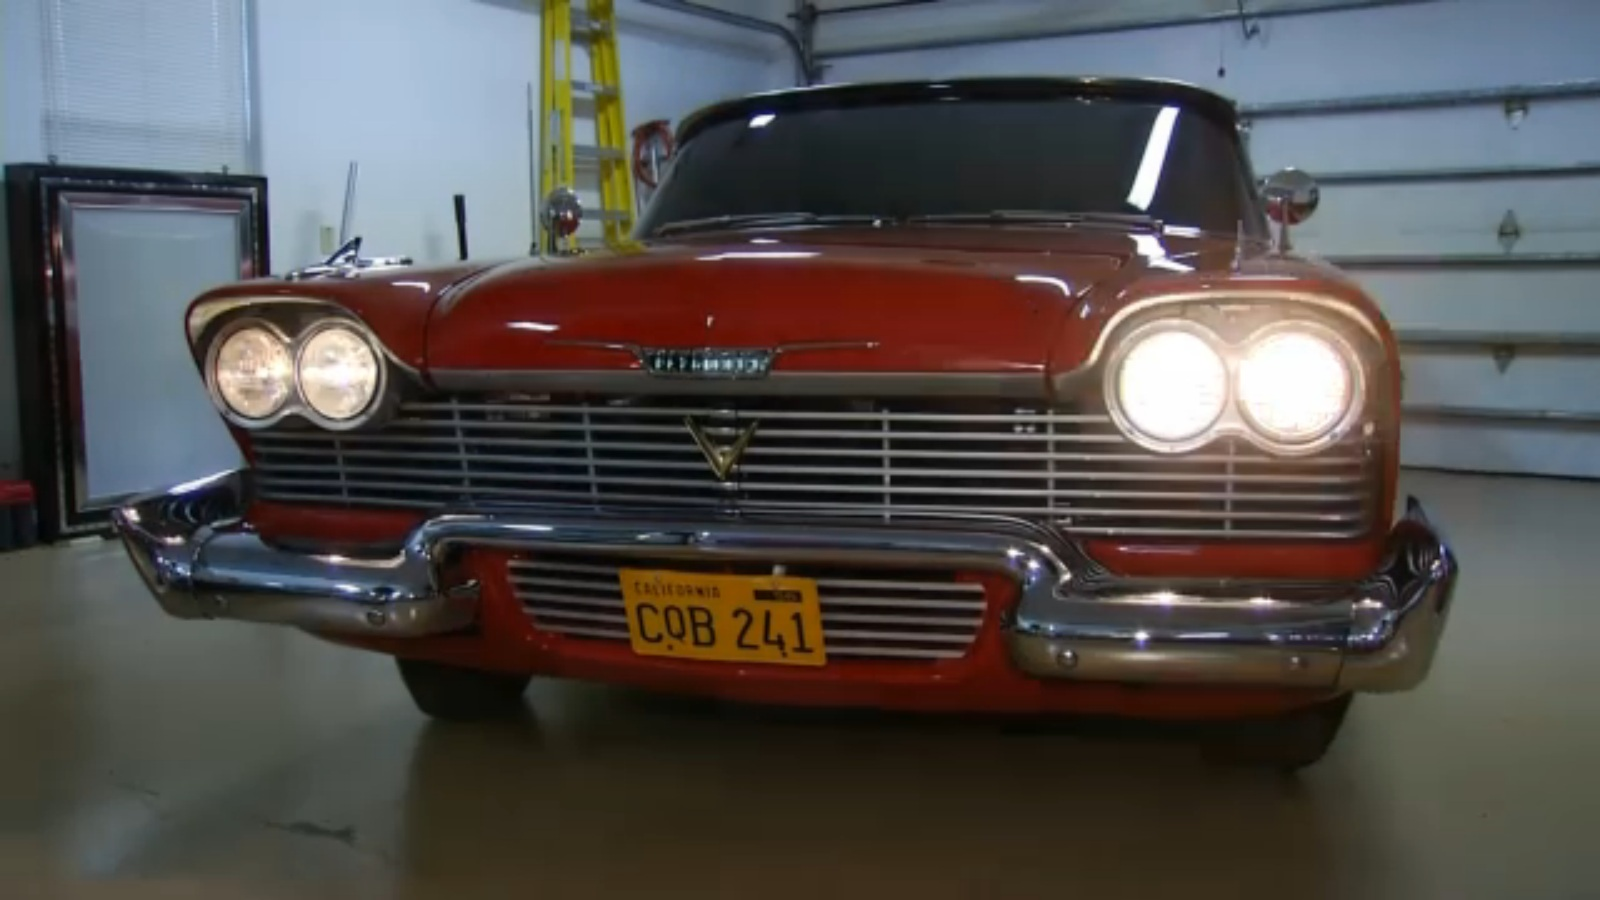 Christine's Headlights